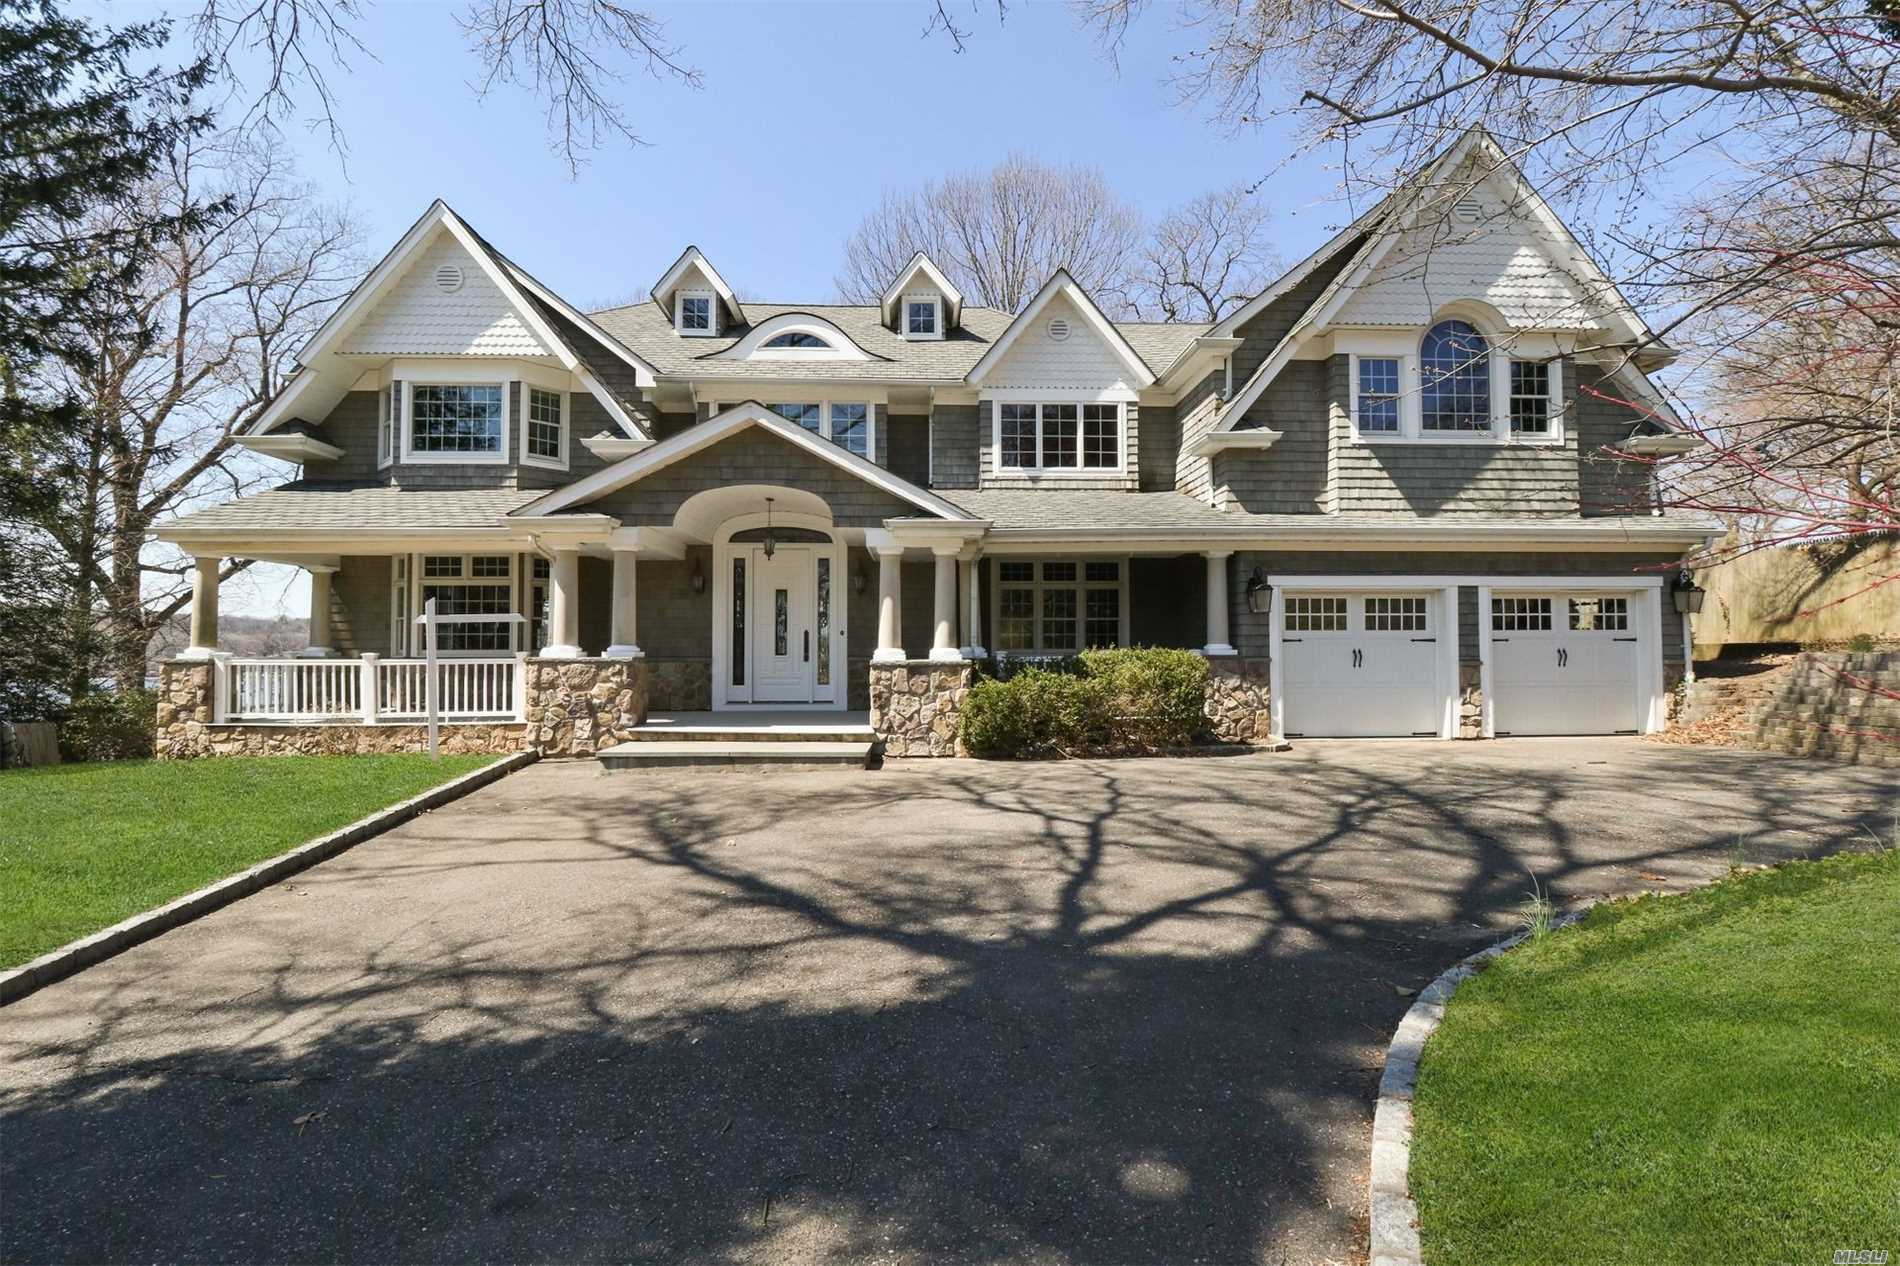 Amazing 5, 256 sq feet Young Colonial over looking Hempstead Harbor Situated on Half an Acre at the end of the cul-de-sac. Gorgeous Water-view from all Angles. Stunning Sunsets. Lr w/18 ft ceiling. Huge Basement has 10 ft ceiling Suitable for Gym, Basketball Court or Entertainment Area. Hardwood floors Throughout. Every Bedroom has it's own character.. Room for Pool. You will Be Impressed.